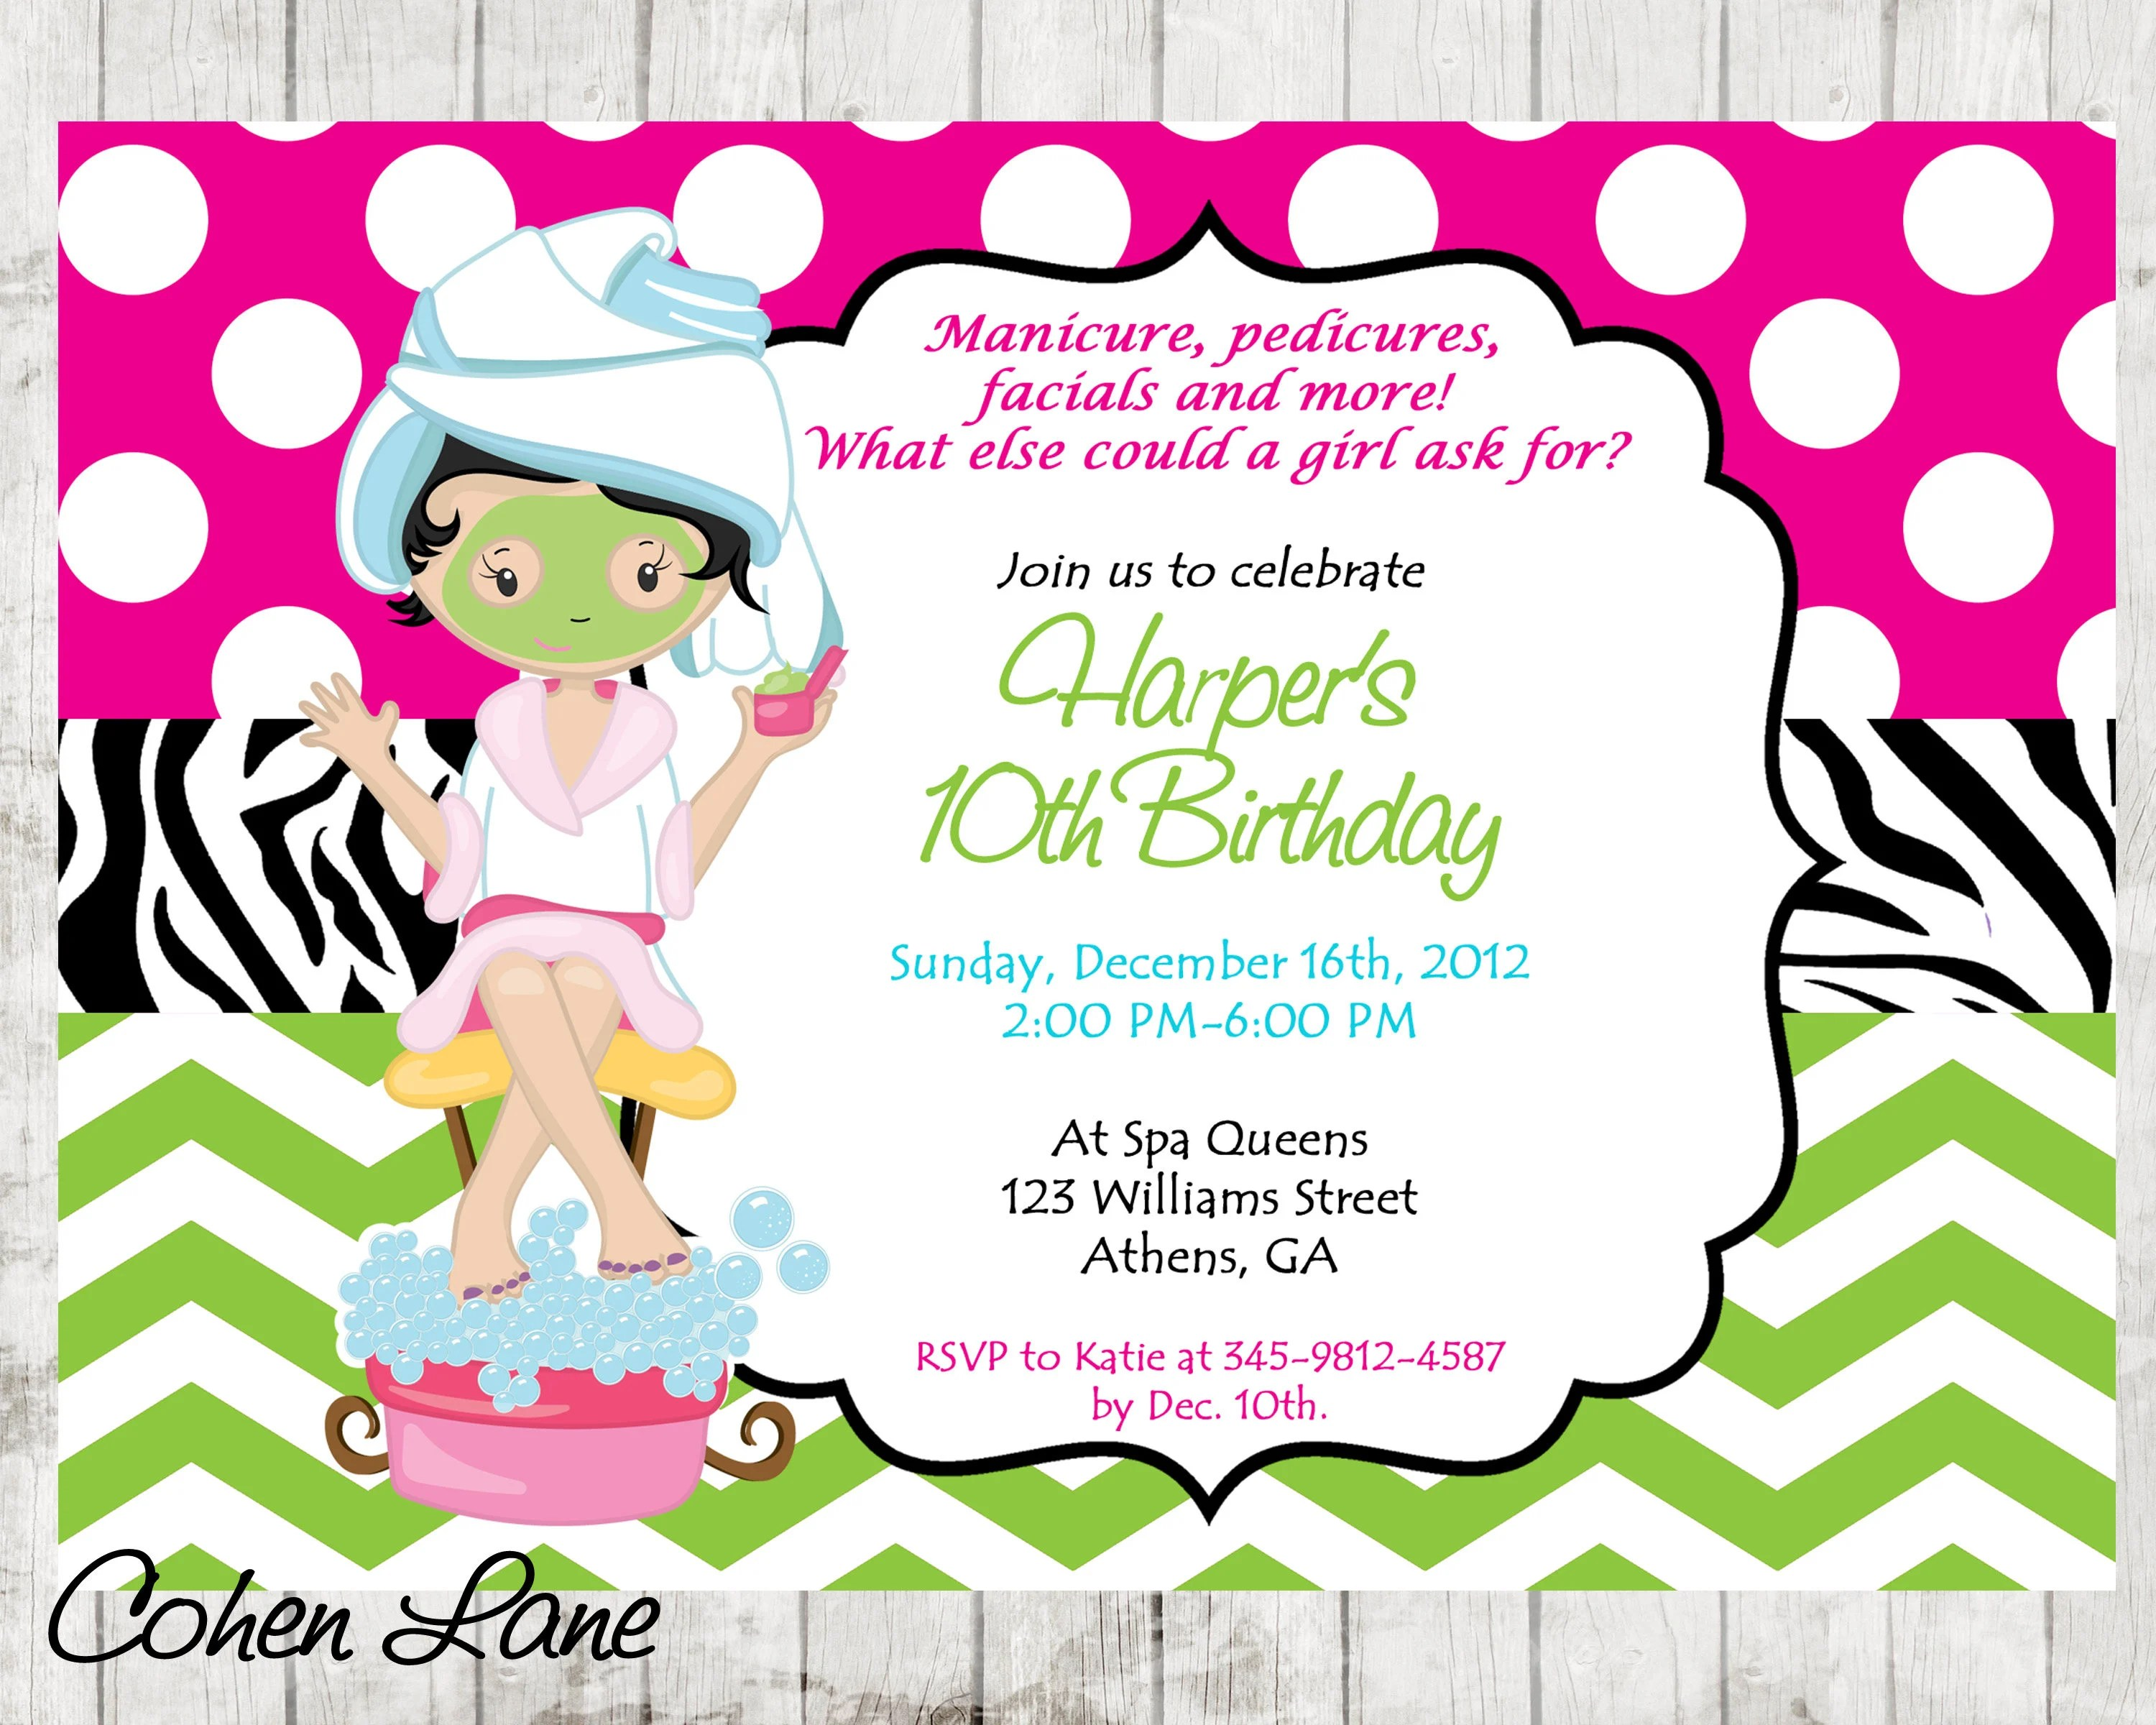 Spa Party invitation Spa Invitation Spa Party Invite Spa Birthday - spa invitation